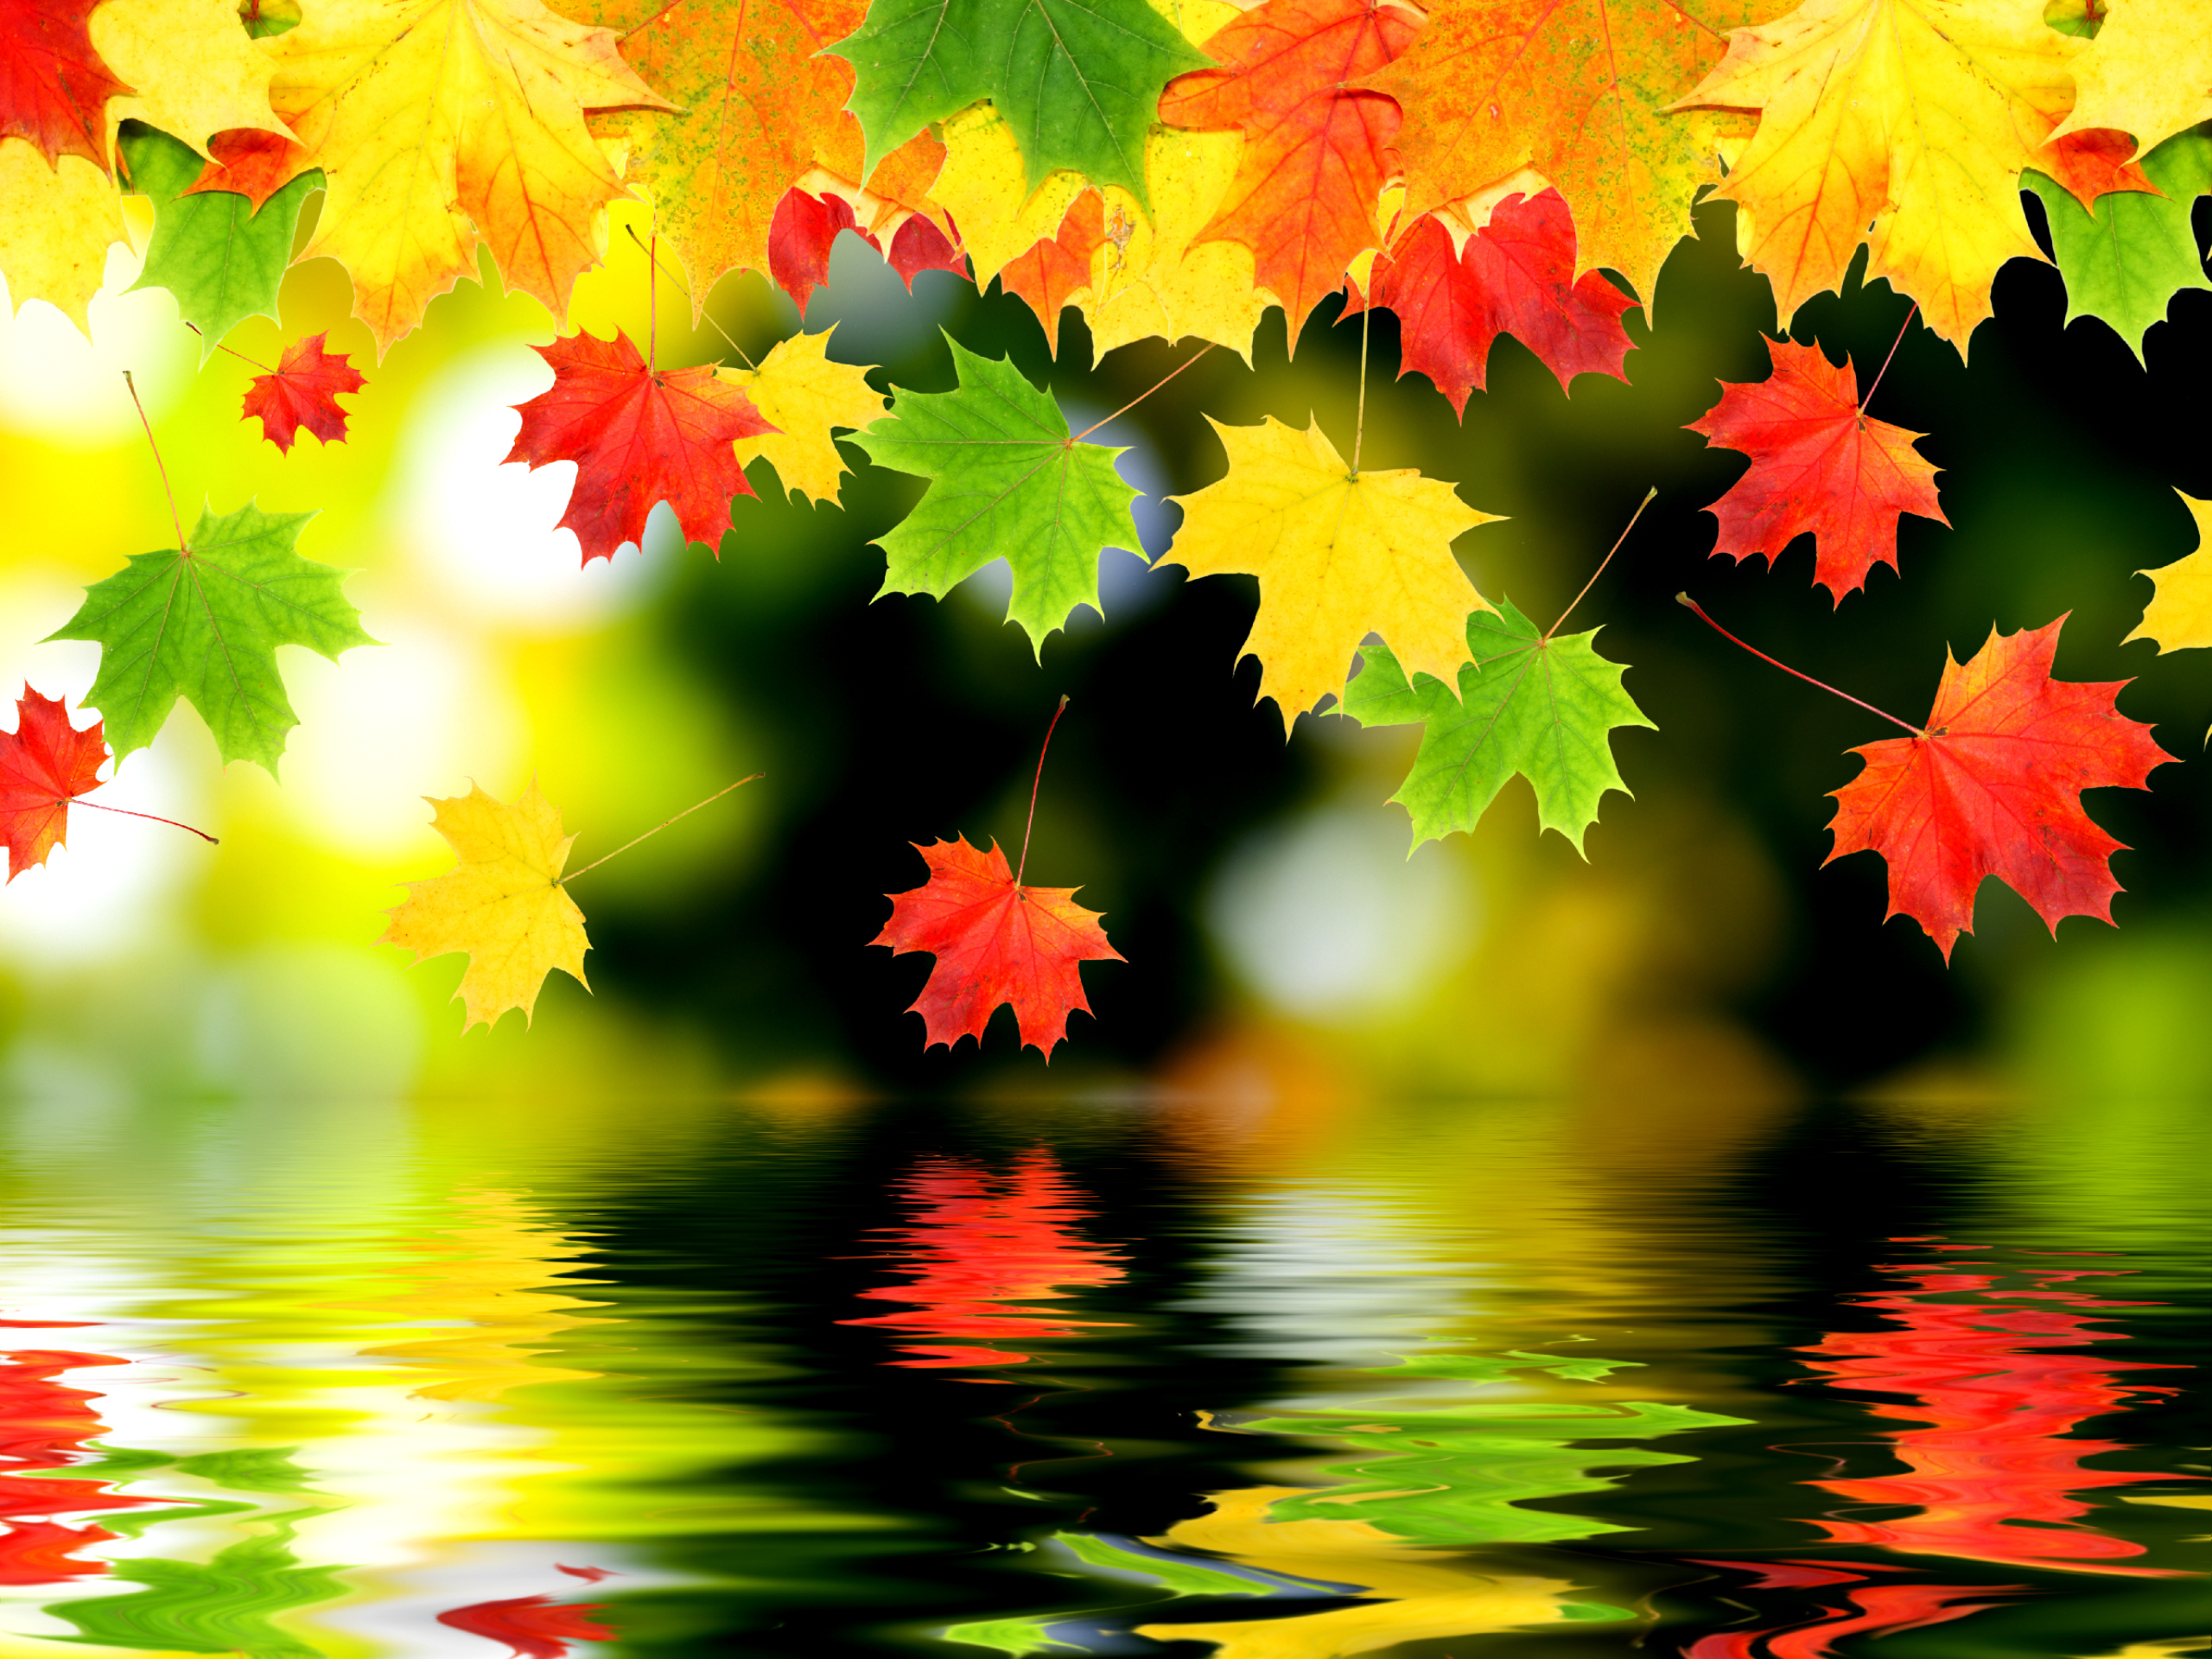 Wallpaper Autumn leaves over water